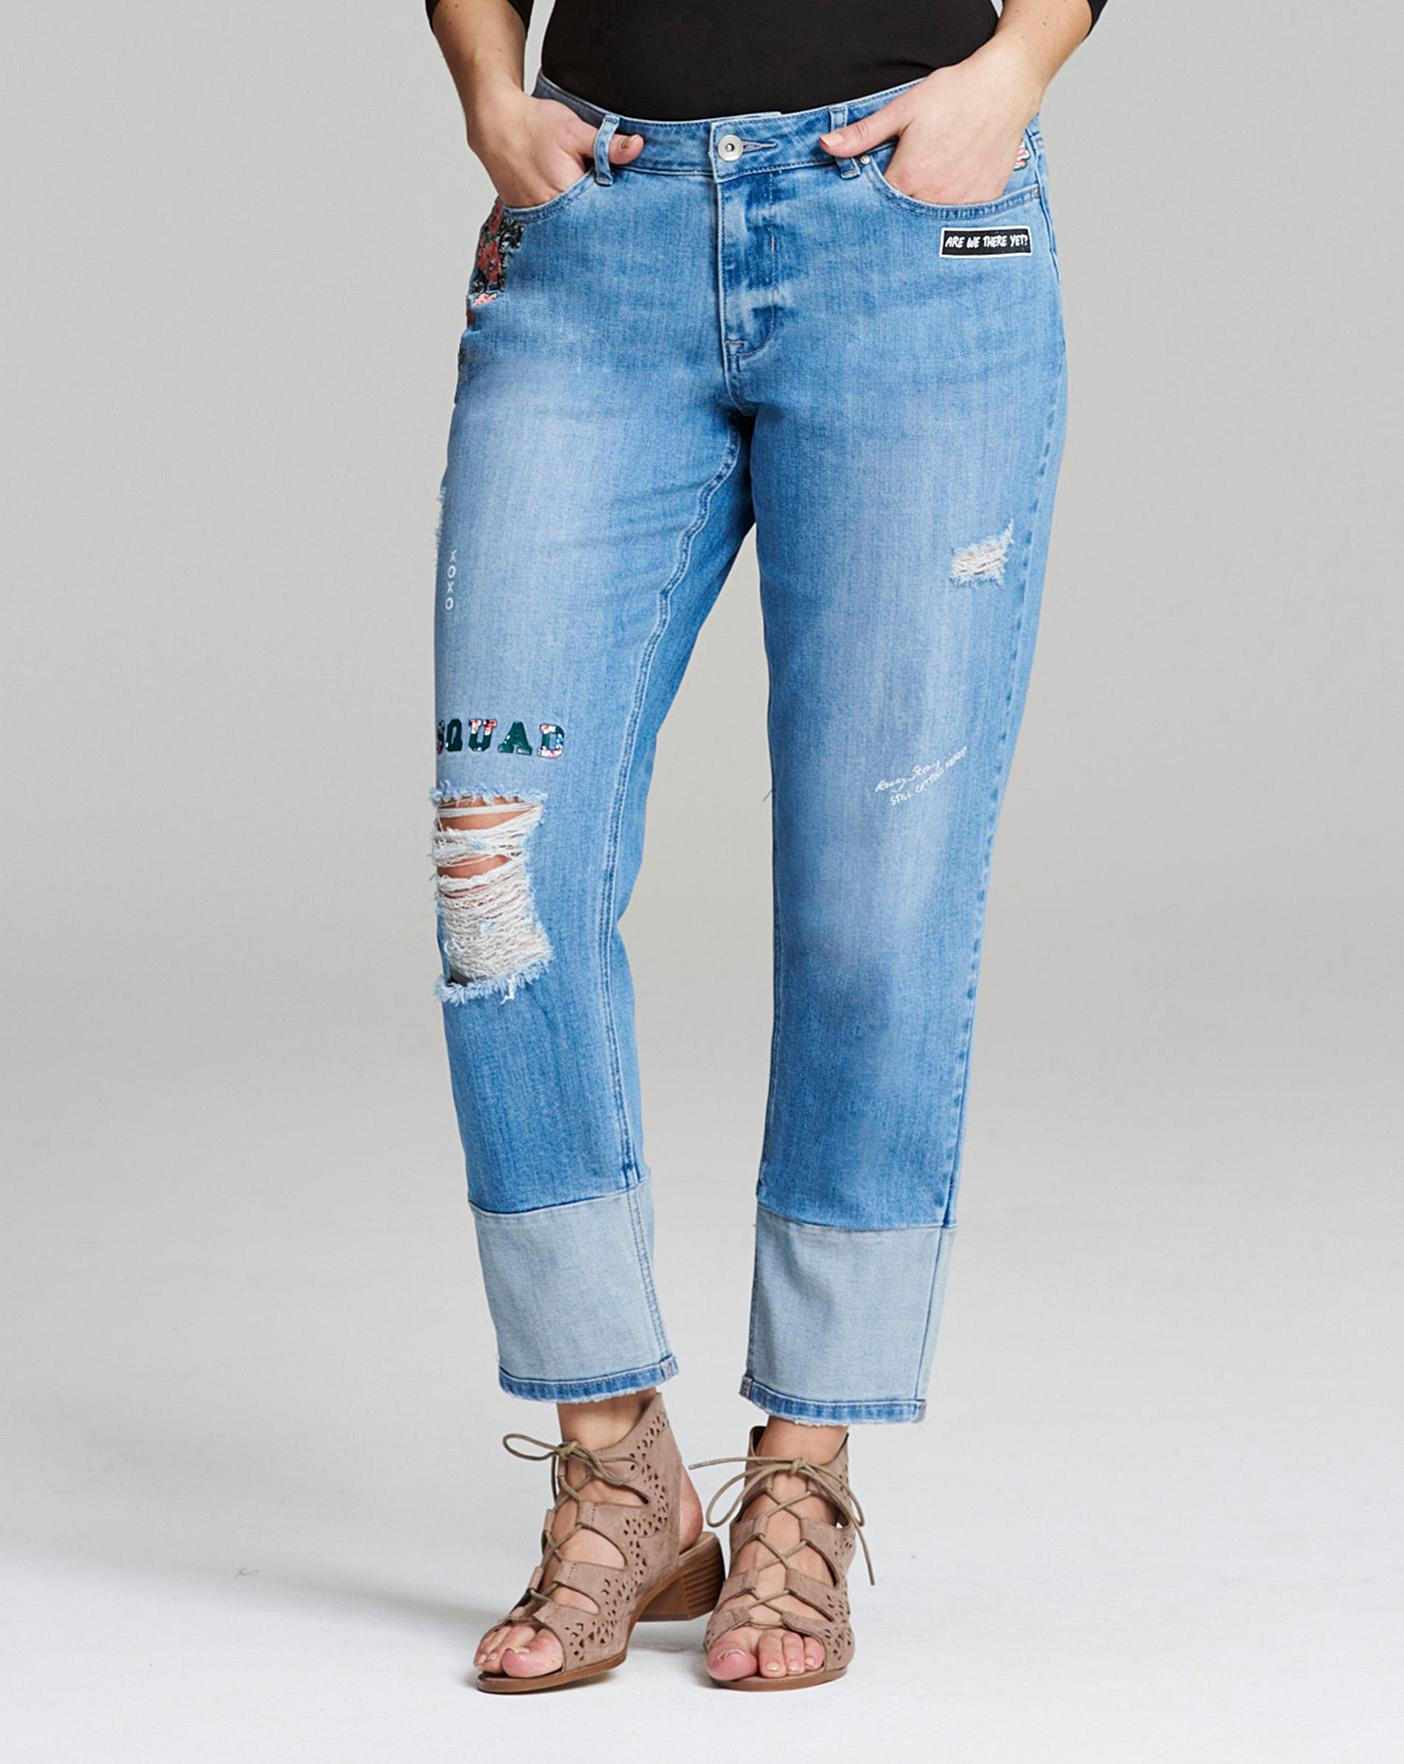 823398f6d00 Layla Embroidered Graffiti Distressed Boyfriend Jeans Regular Length